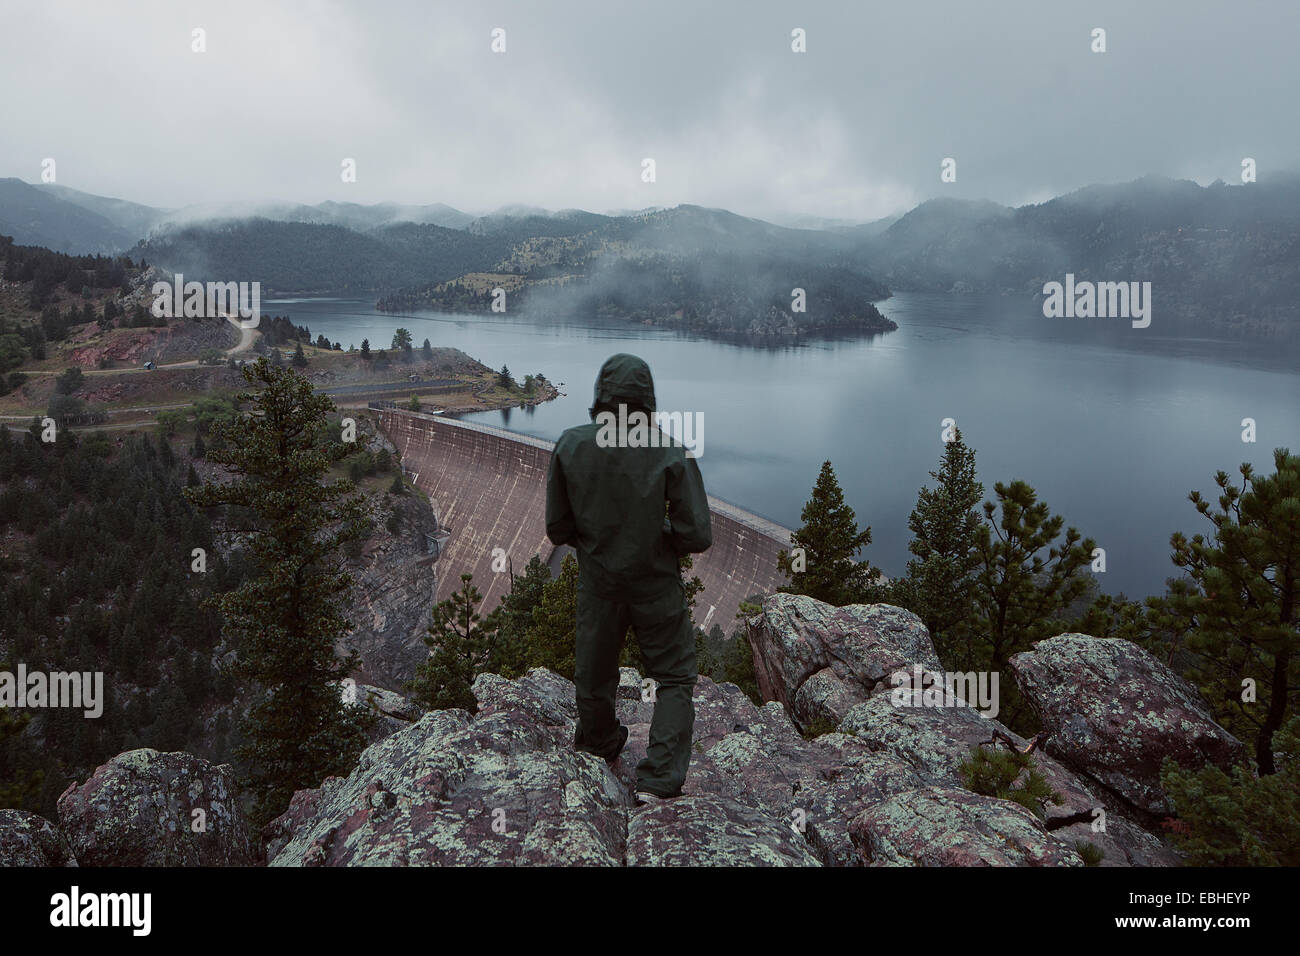 Man overlooking the Gross Dam in Colorado, USA - Stock Image